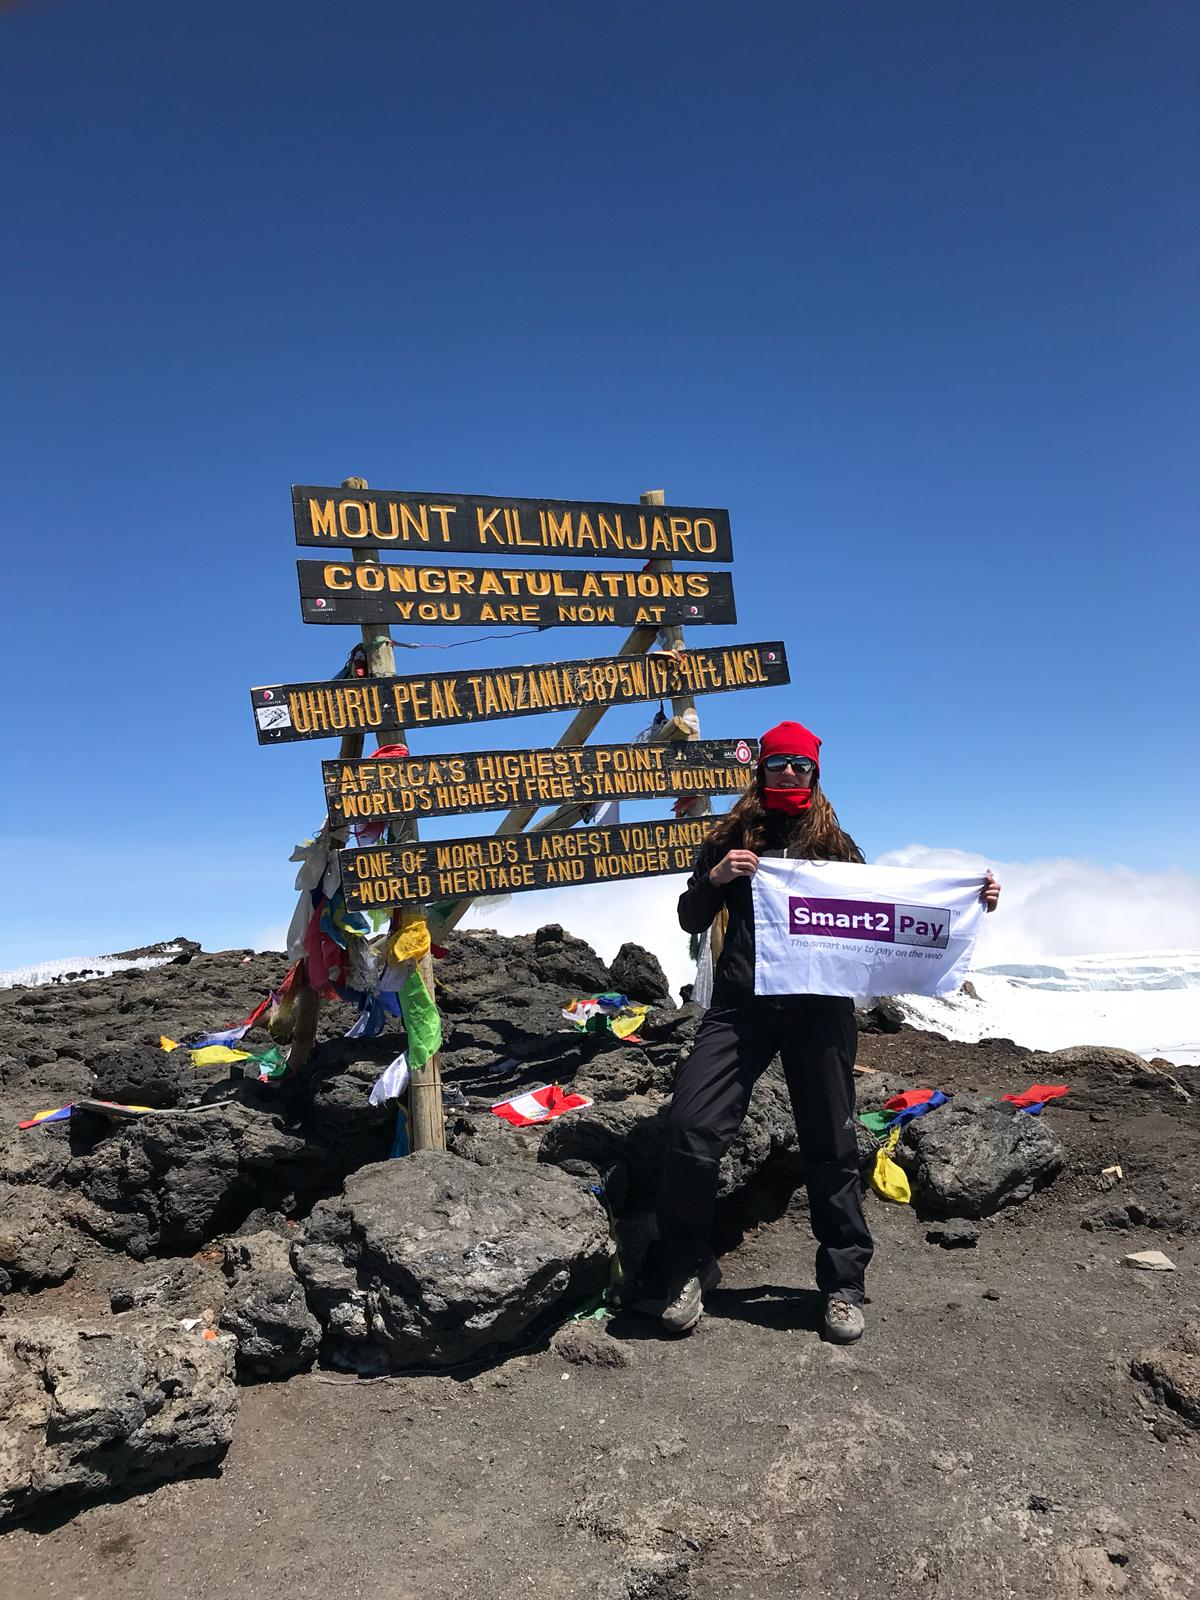 Smart2Pay flag on Kilimanjaro